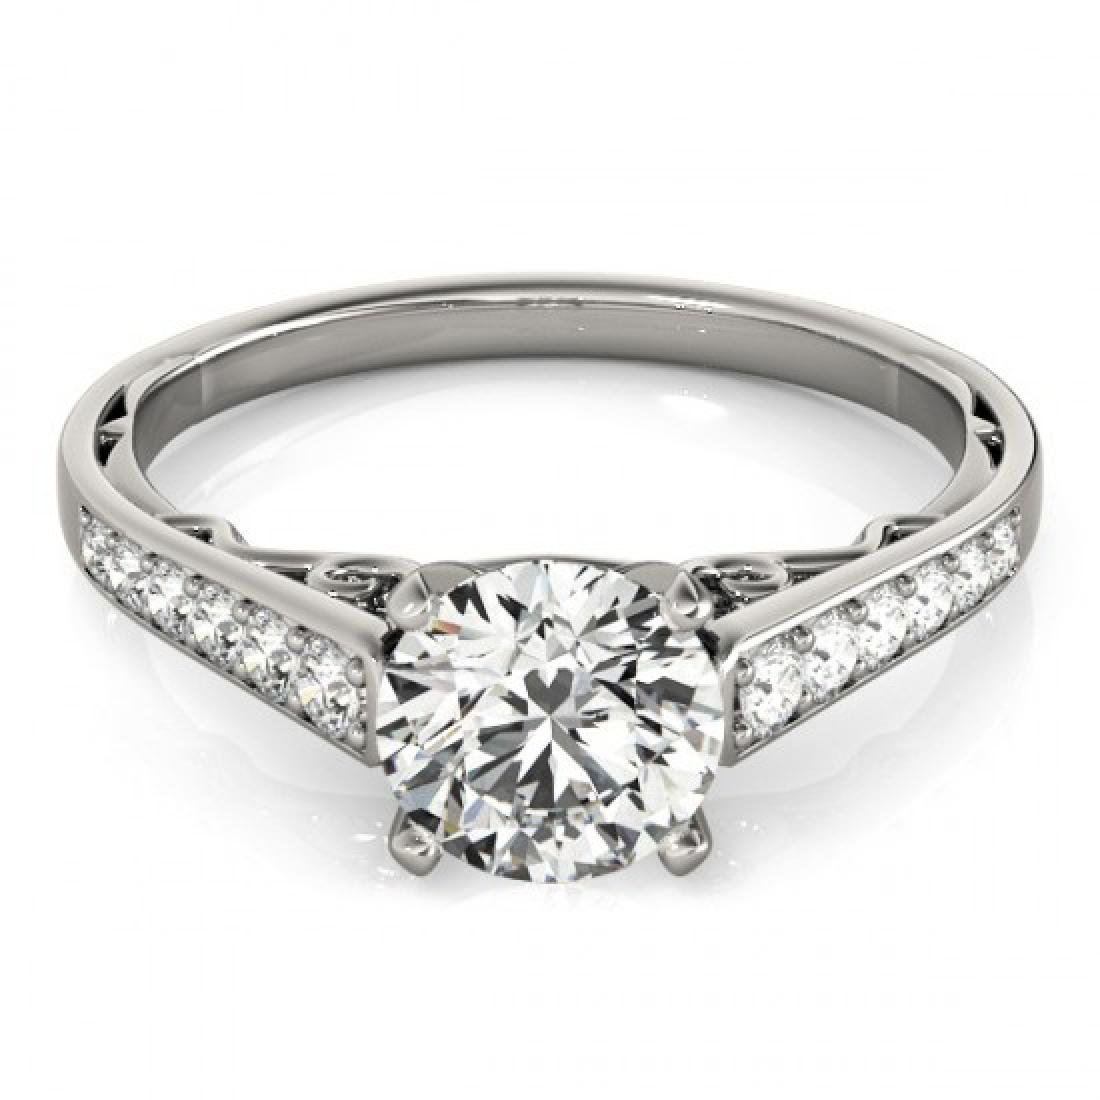 0.85 CTW Certified VS/SI Diamond Solitaire Ring 14K